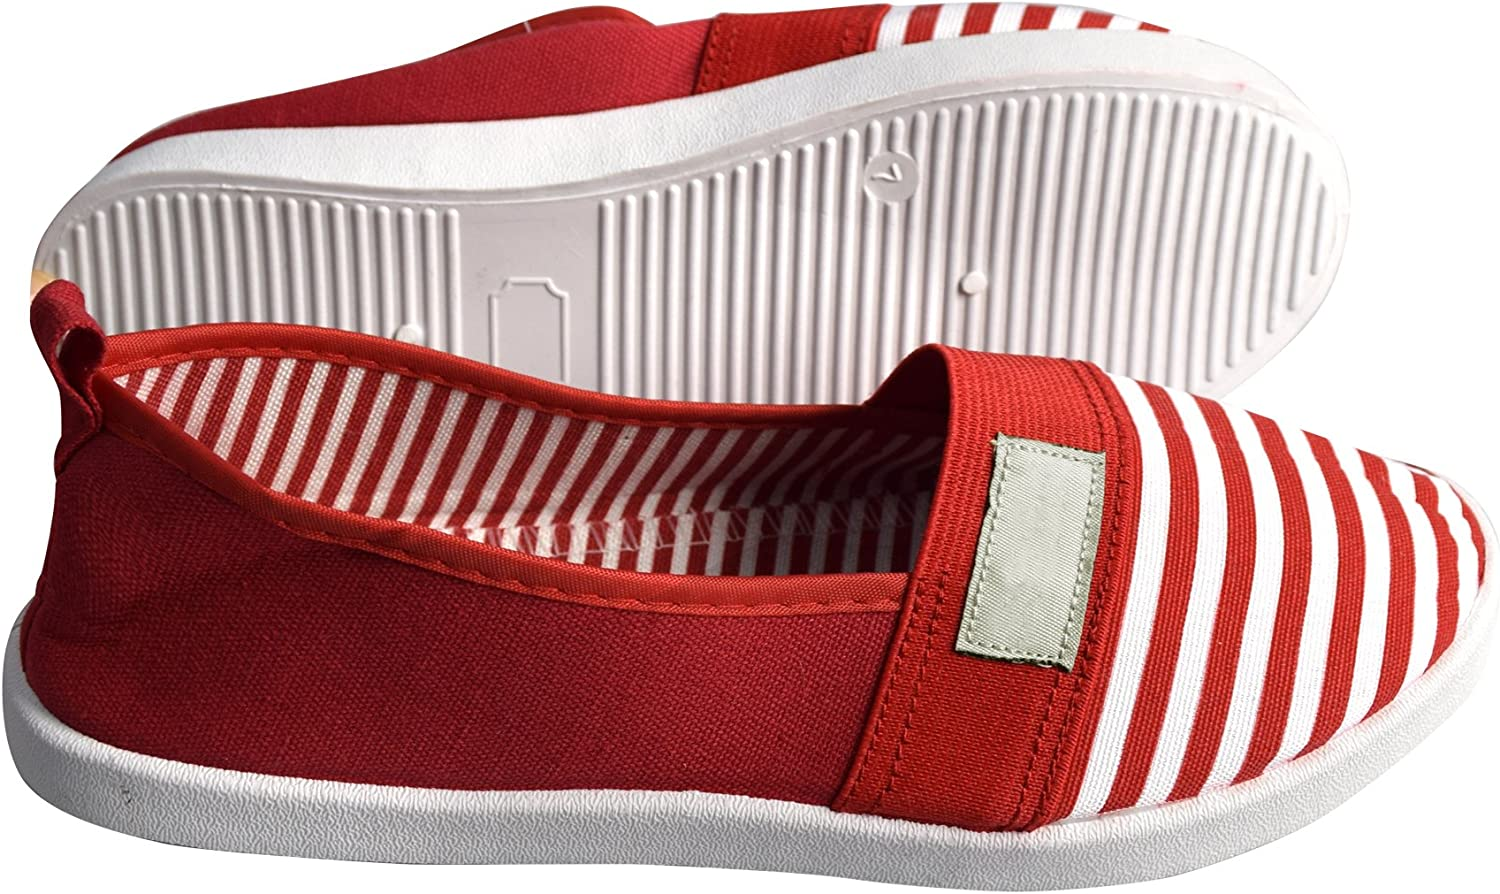 Peach Couture Striped Lightweight Canvas Classic Casual Slip On shoes Sneakers